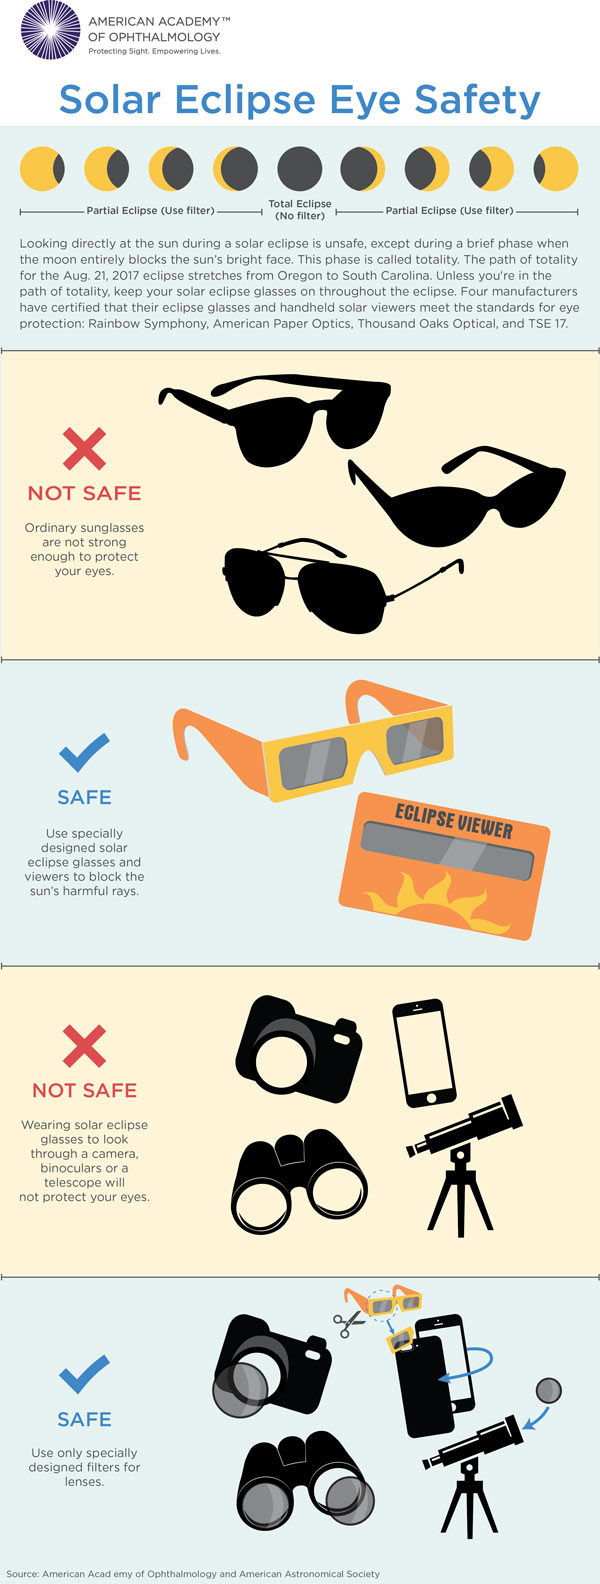 Infographic showing safe eclipse viewing techniques and warning about unsafe viewing practices.